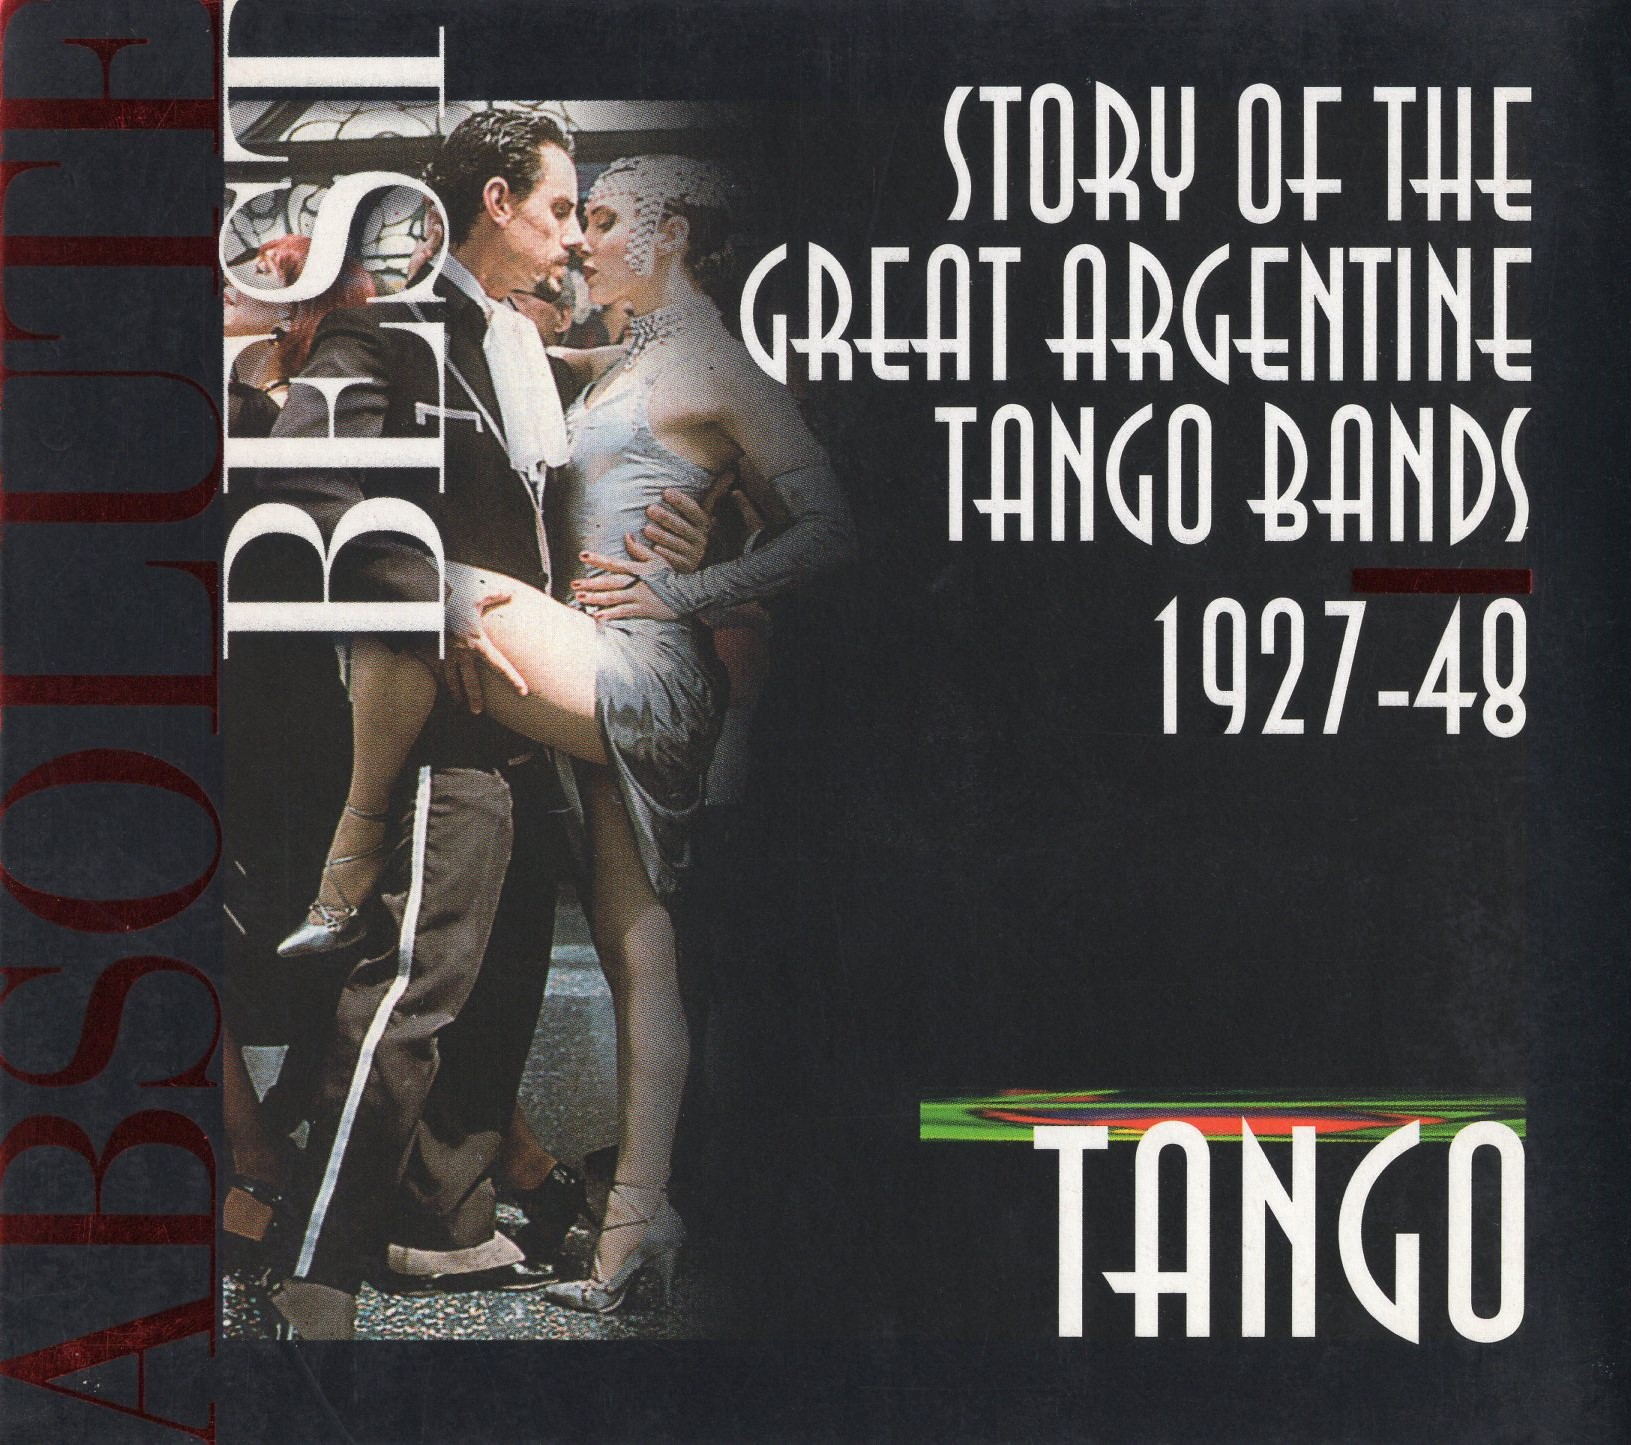 """Absolute Best Story of The Great Argentina Tango Bands 1927-48 Tango"""